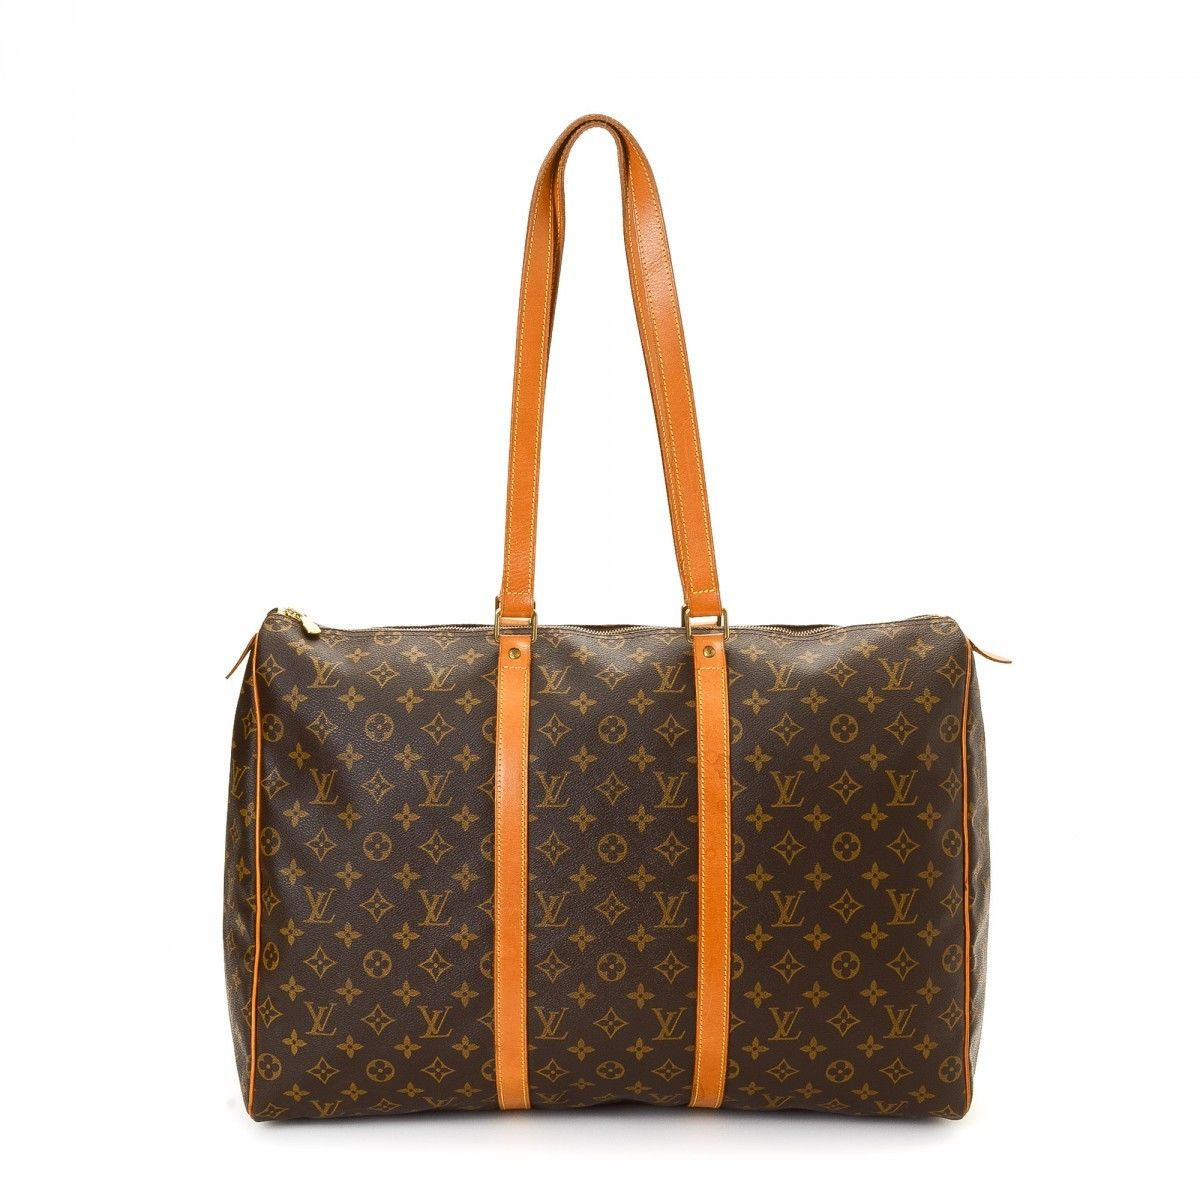 Louis vuitton sac flanerie 50 monogram coated canvas lxrandco pre owned luxury vintage - Sac big bag ...